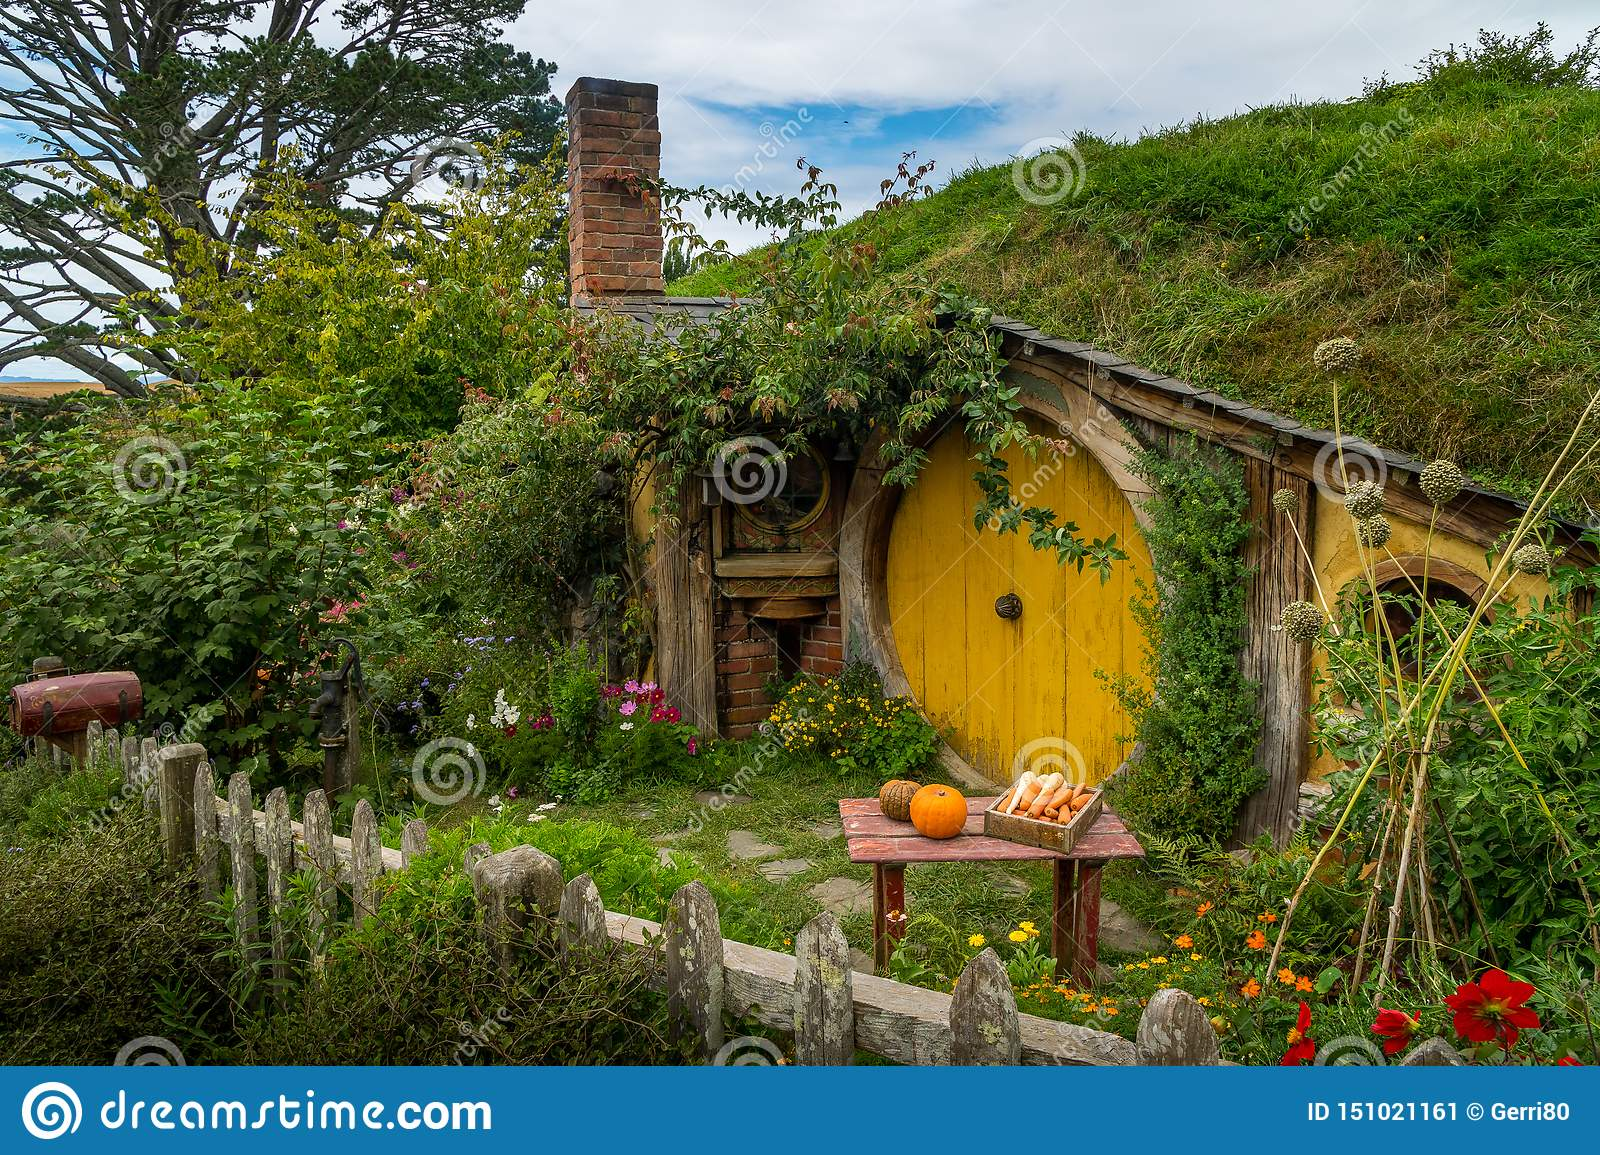 Hobbit house at the movie set of Lord of the rings